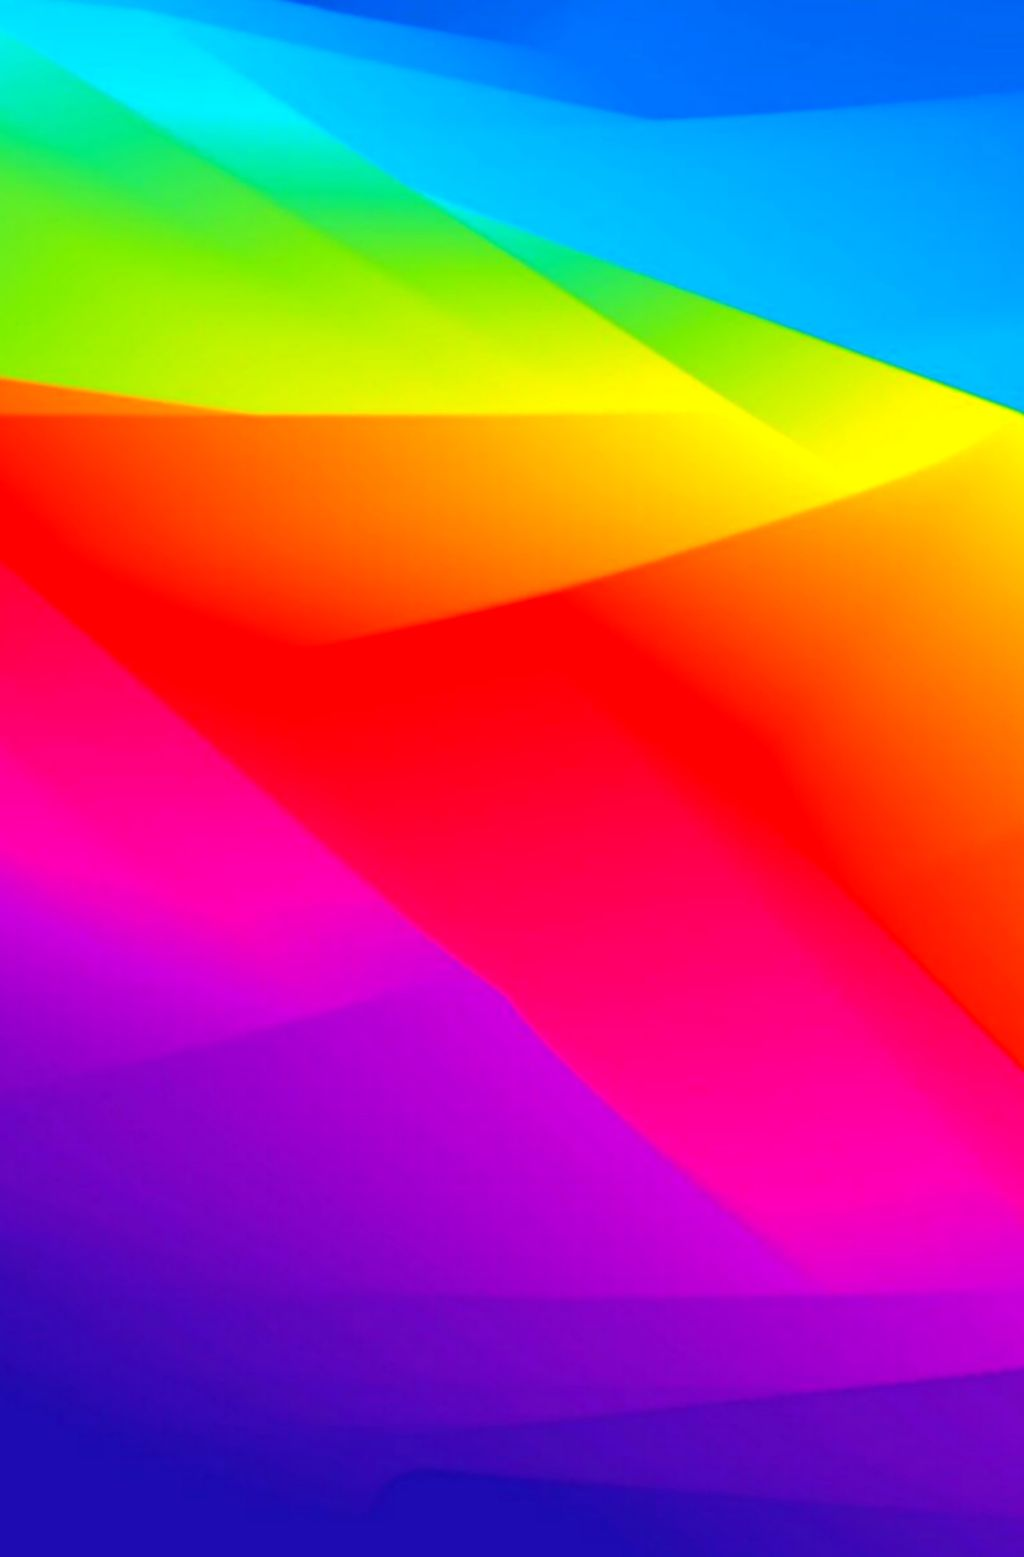 #freetoedit #background #backgrounds #wallpaper #pattern #abstract #geometric #colorlove #colorful #rainbowcolors #myedit #madewithpicsart